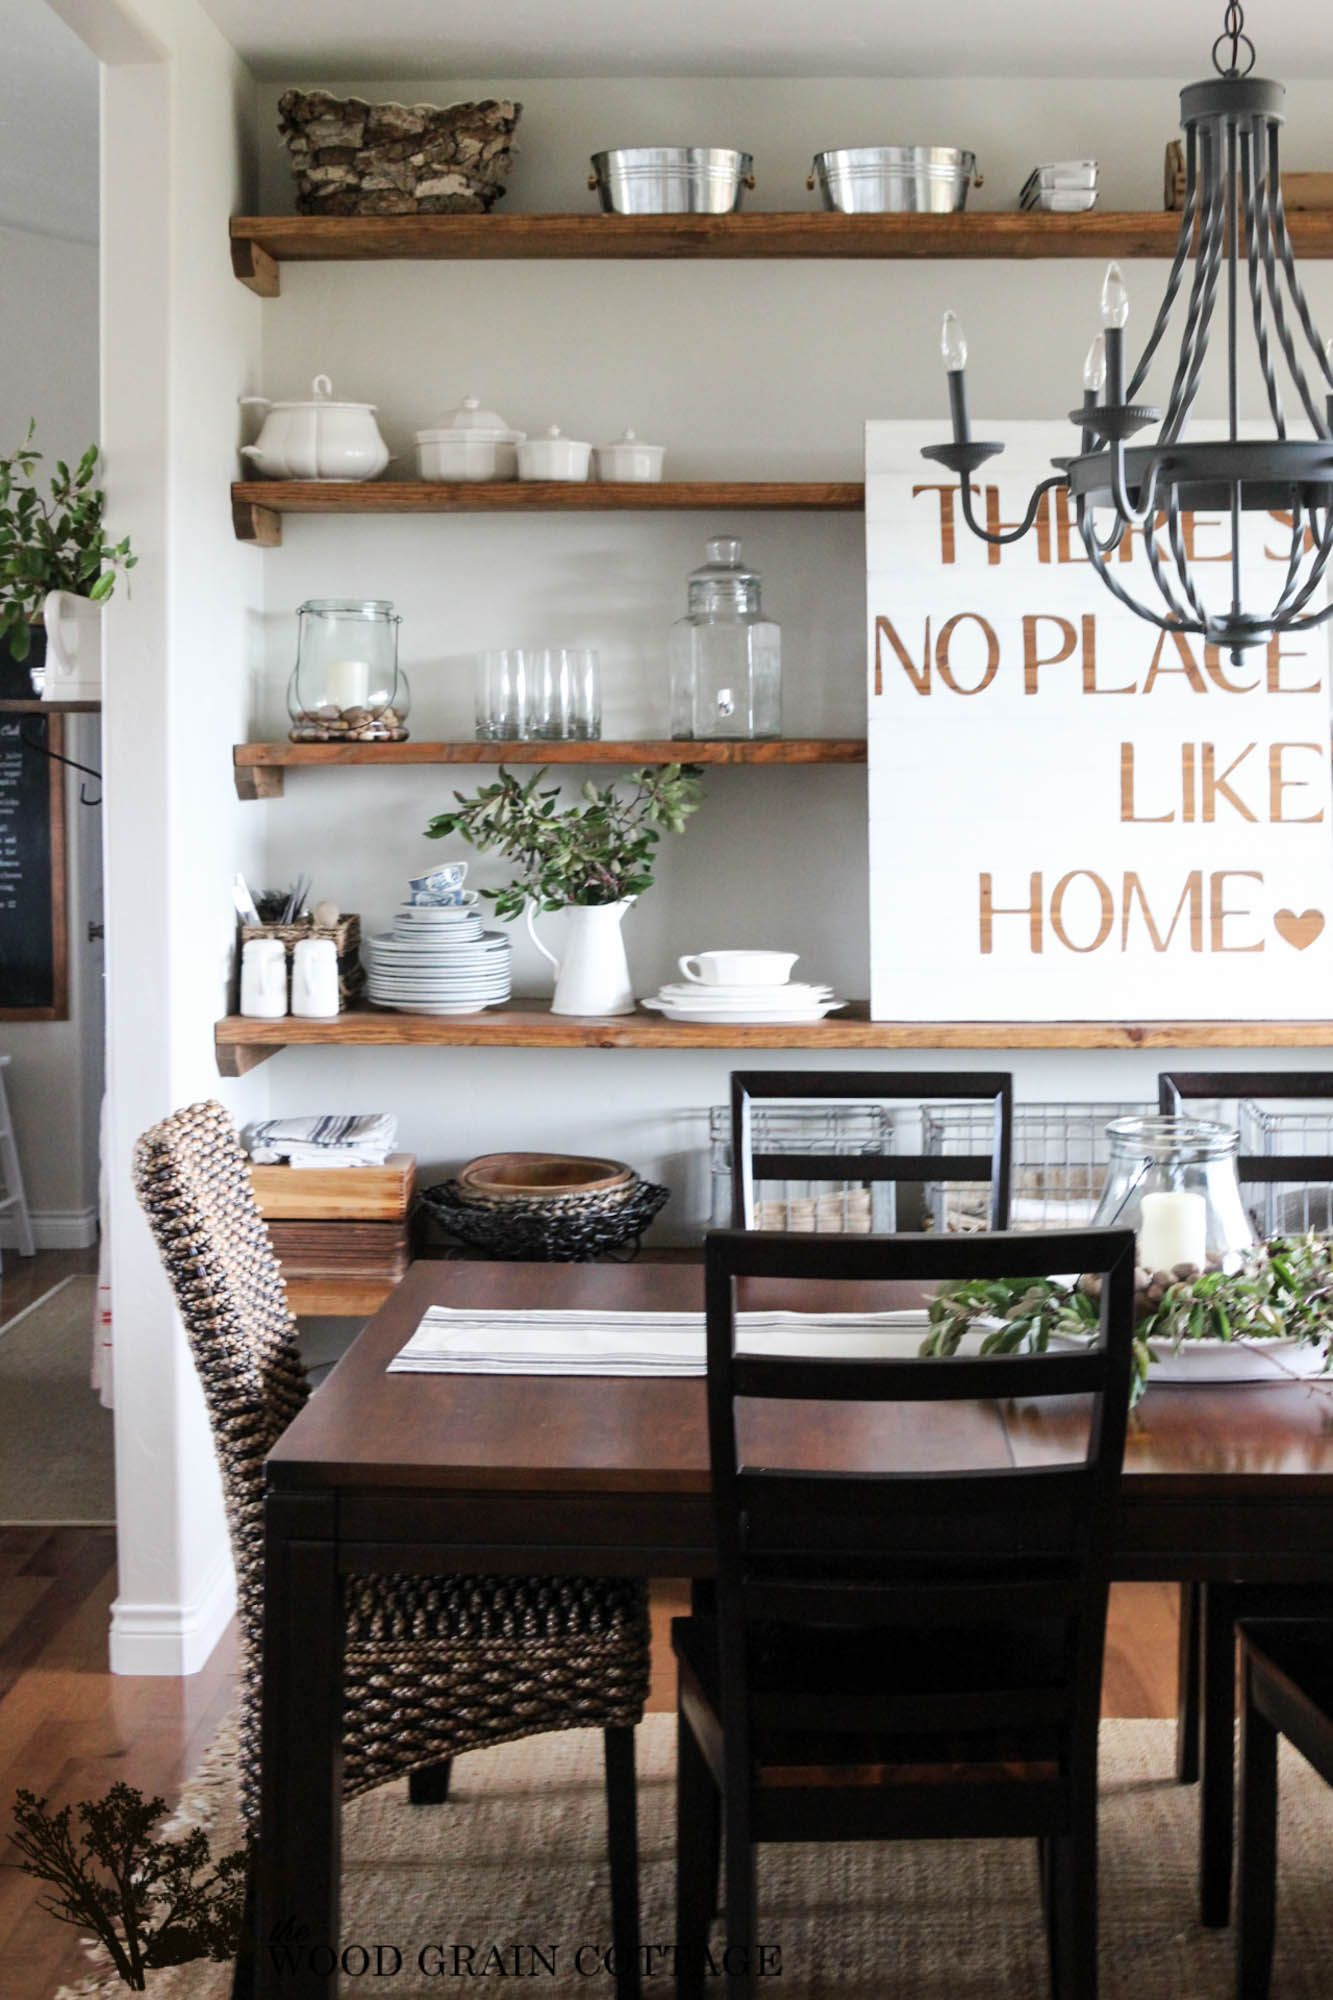 Open Shelving image by Michelle Hawkins Dining room